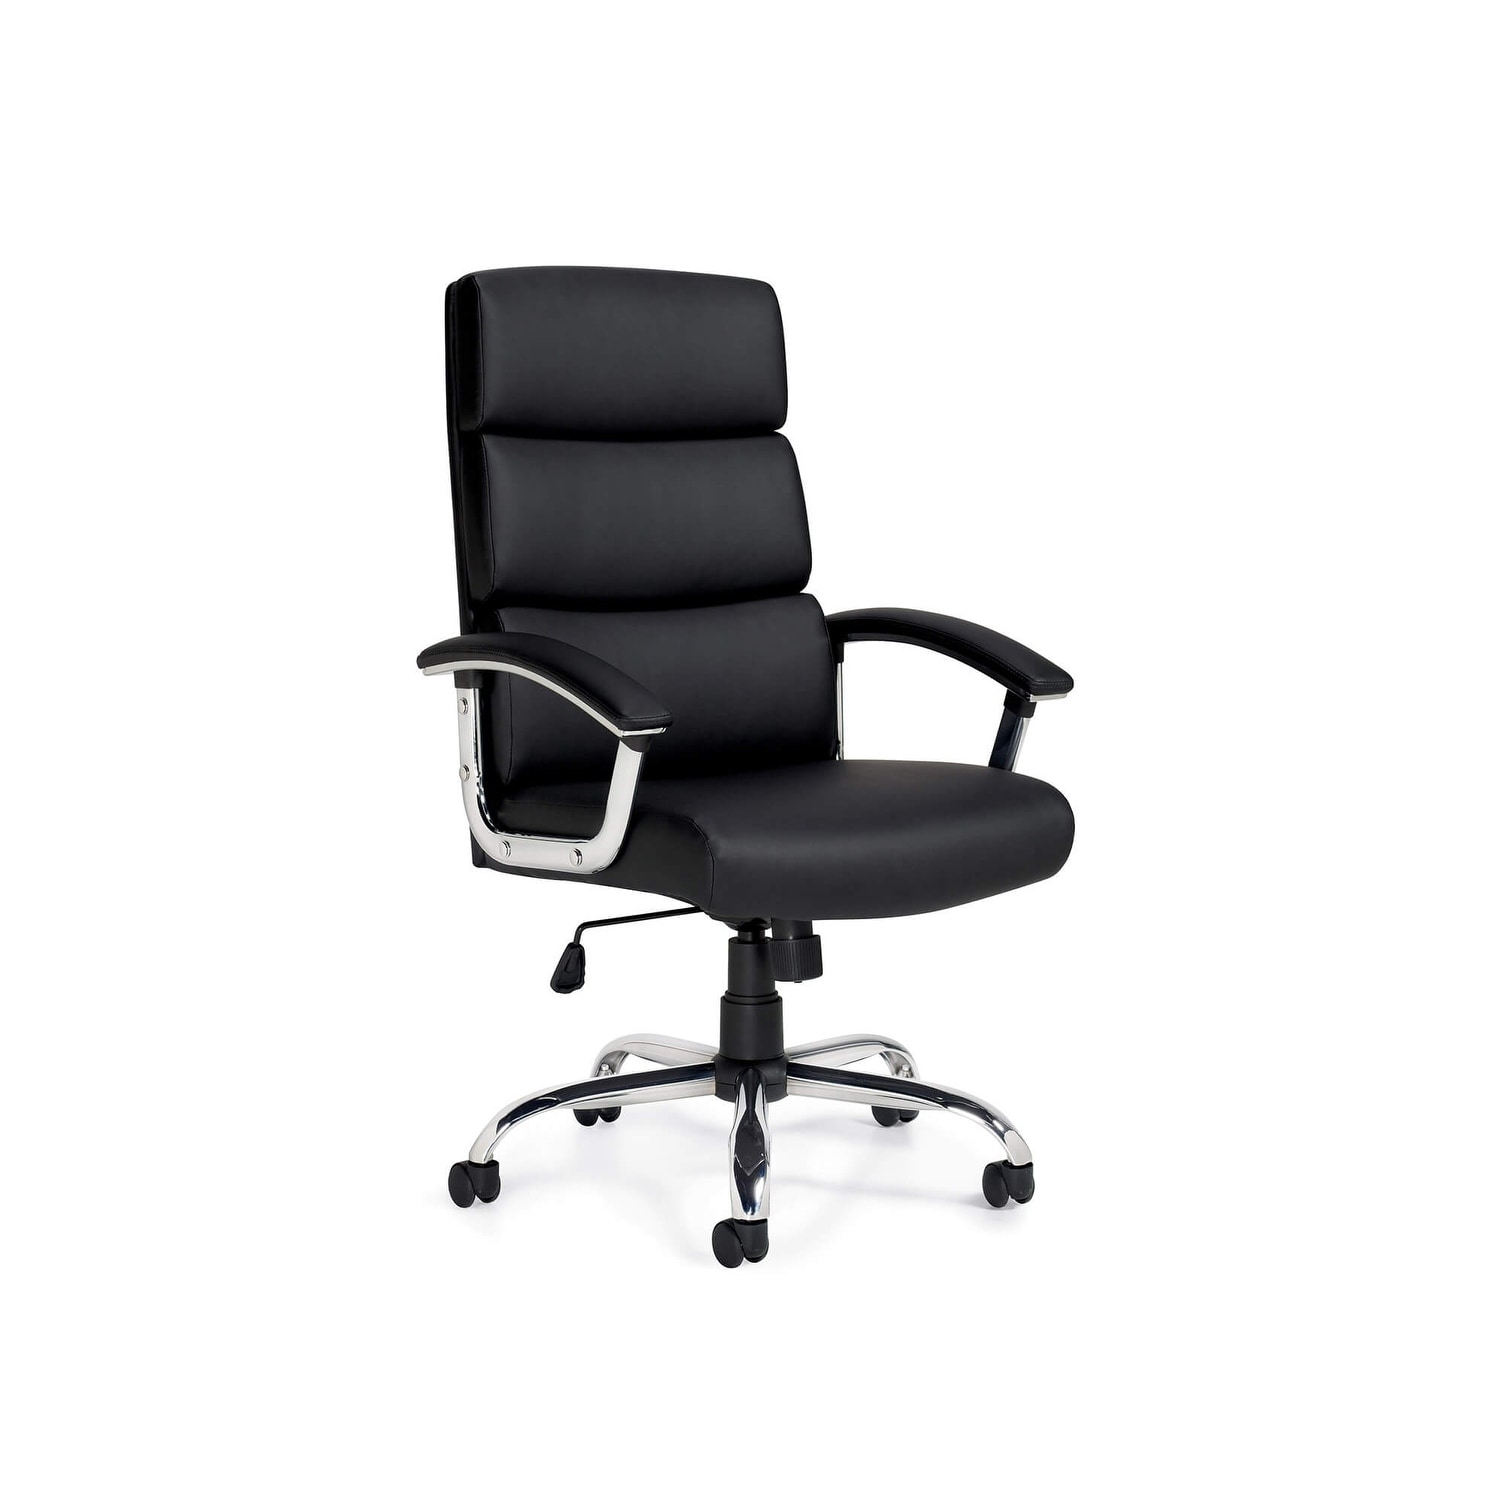 Eton Stylish Office Chairs - 38x38x38